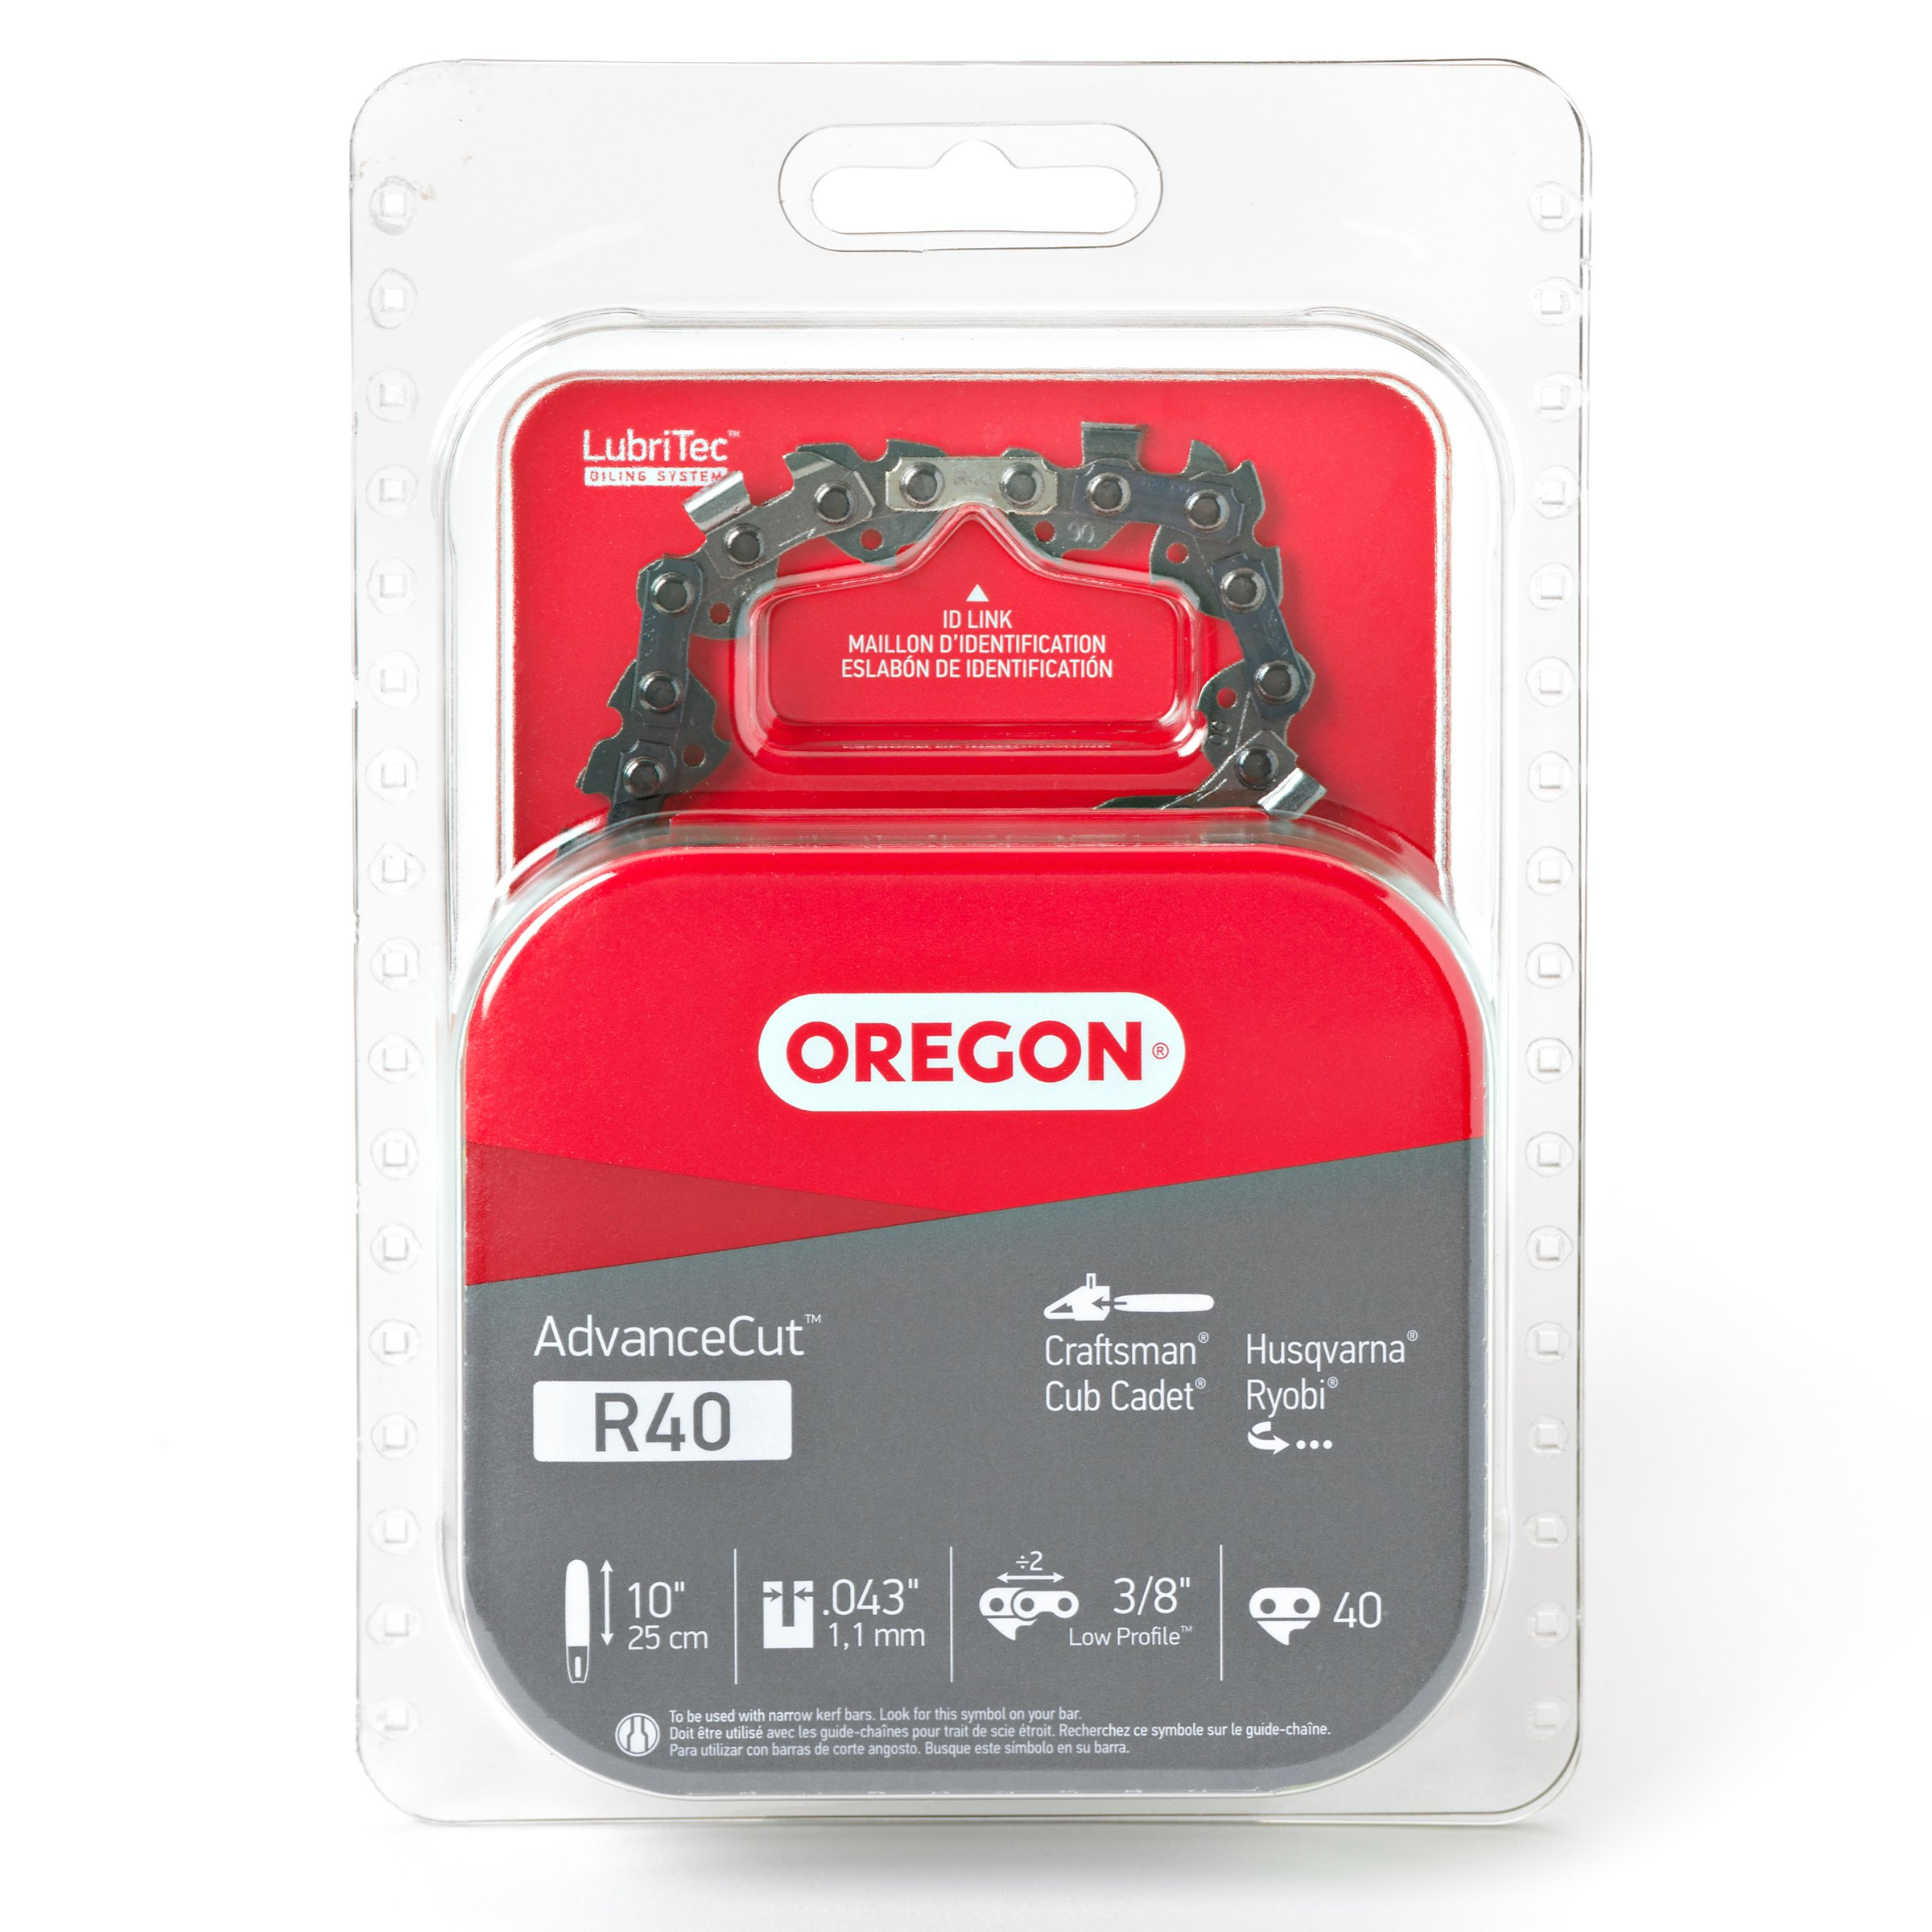 Oregon R40 AdvanceCut 10-Inch Chainsaw Chain, Fits Craftsman, Cub Cadet, Husqvarna, Ryobi by Oregon